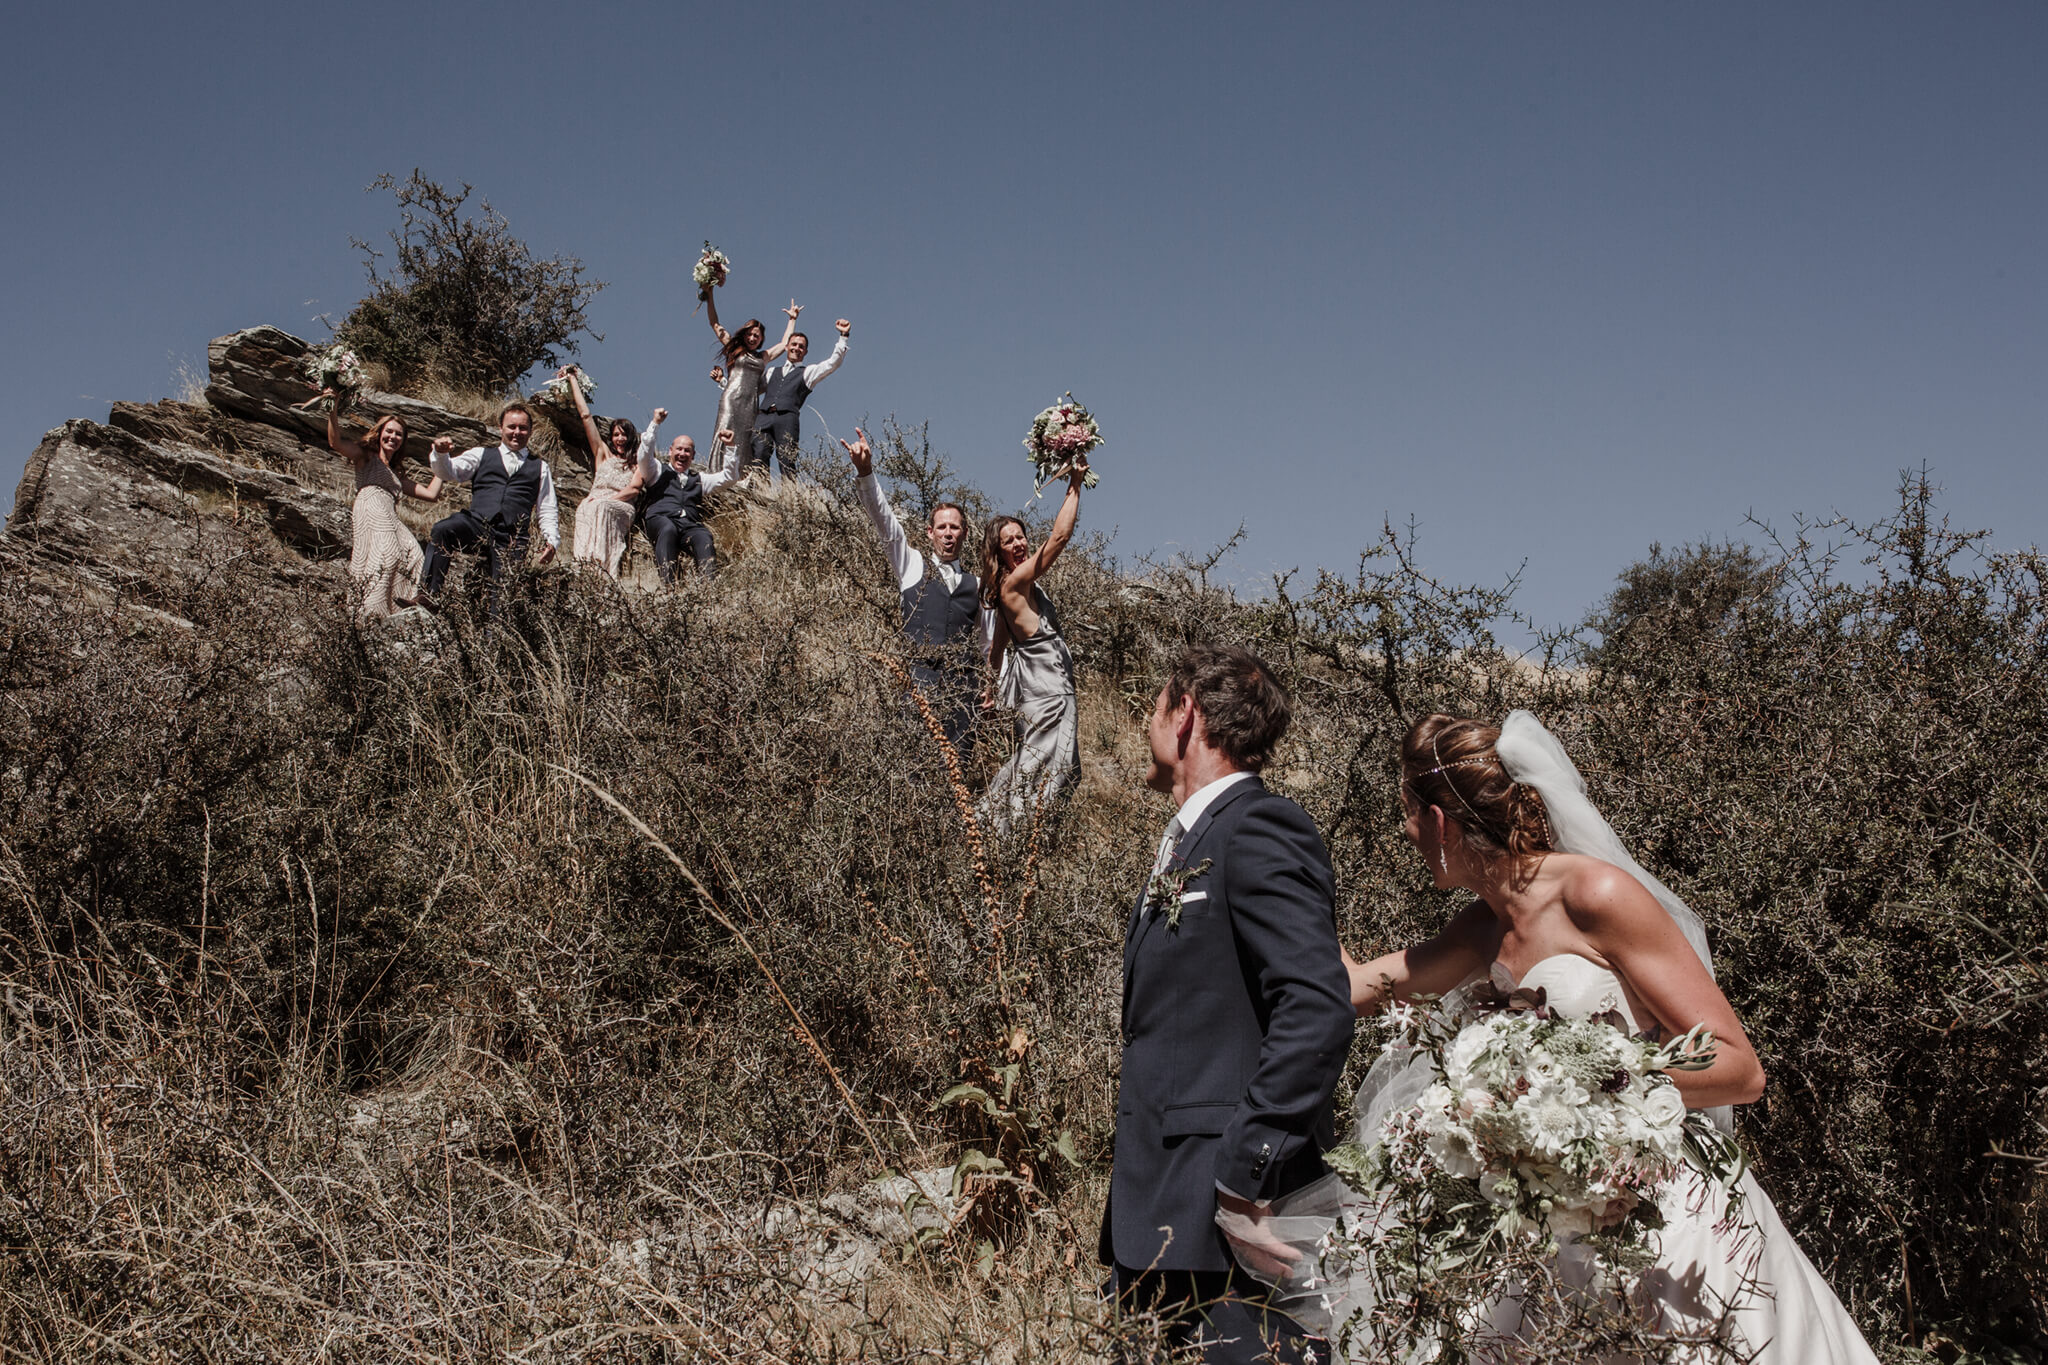 NZ High Country Queenstown wedding-0089.JPG